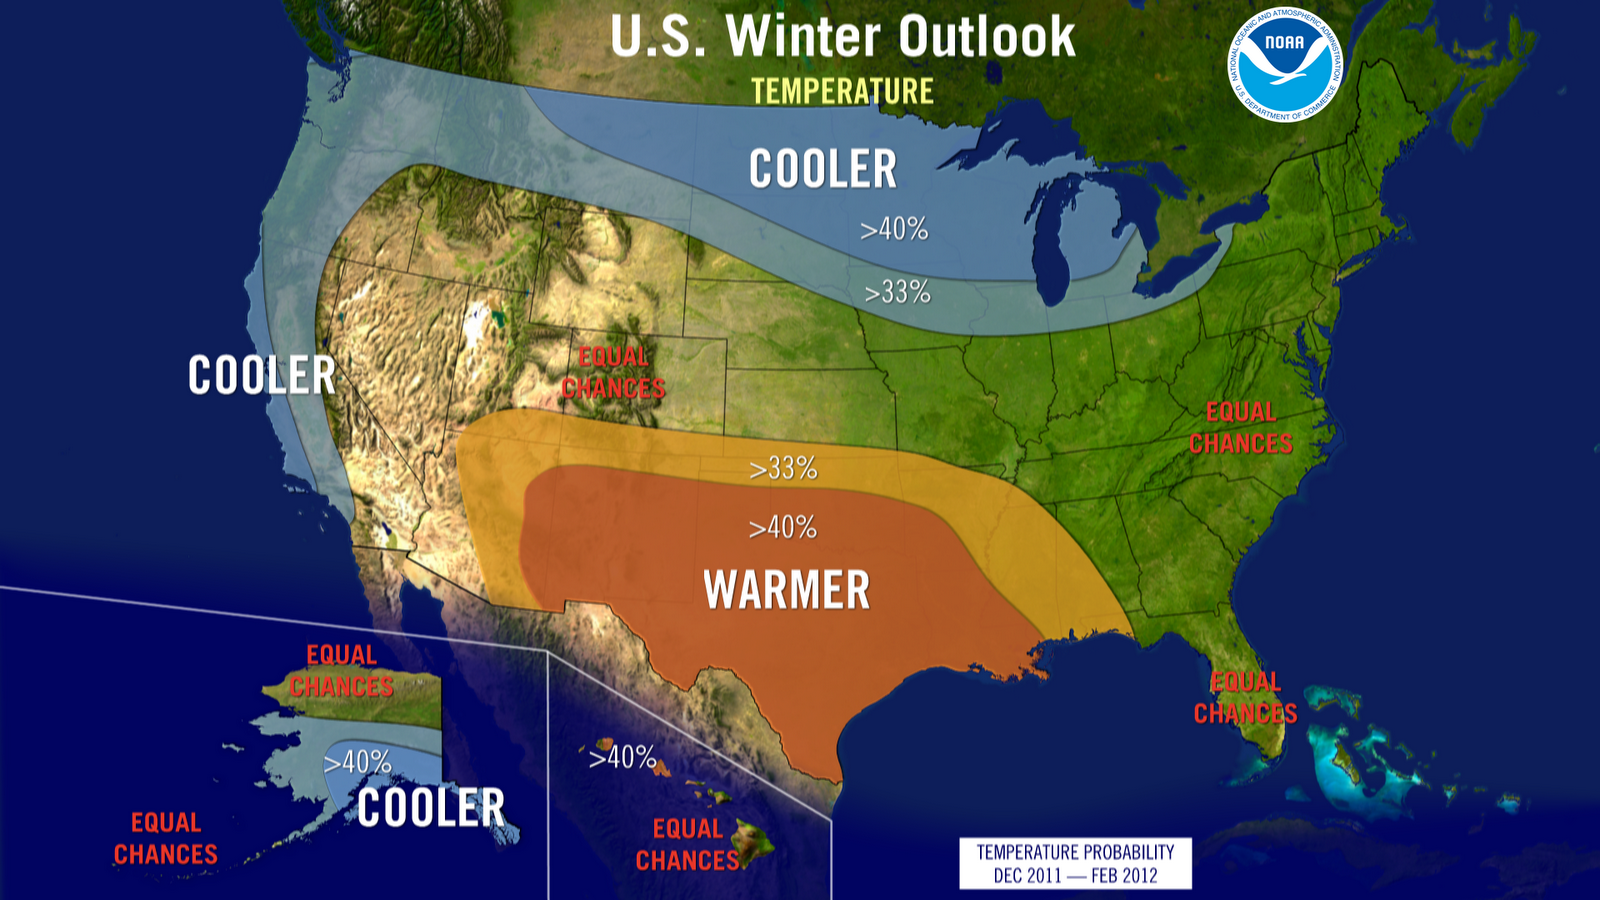 National Weather Service and the NOAA have issued their annual winter